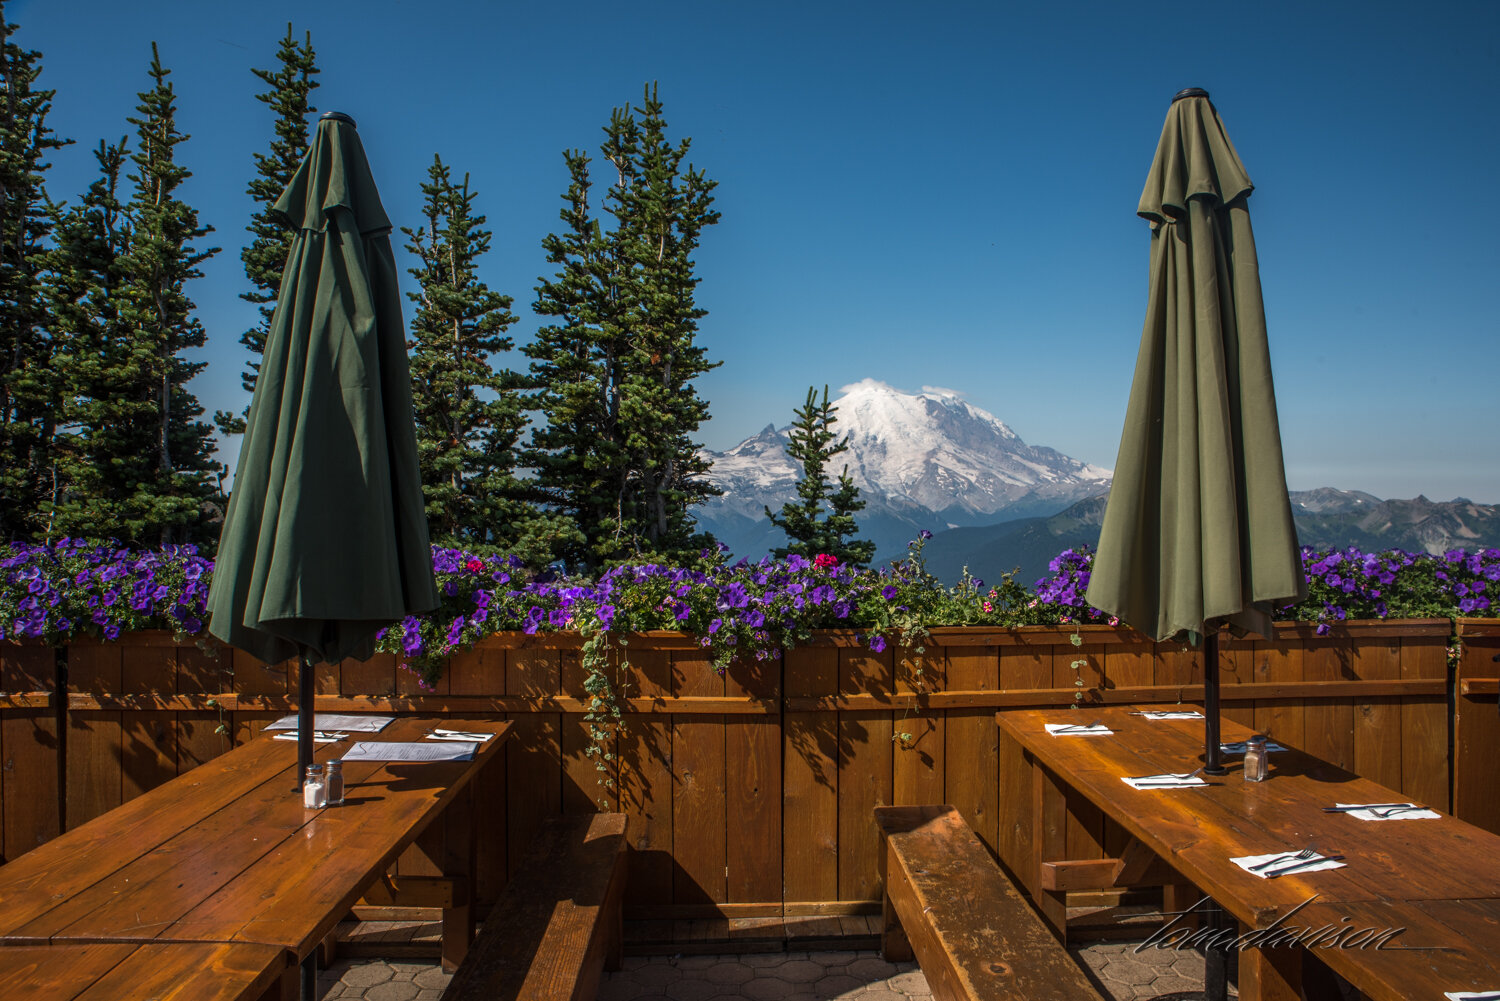 We were encouraged to take the gandola at Crystal Mountain to get a different view of Mt. Rainier. Ride, food and photography were all memorable.